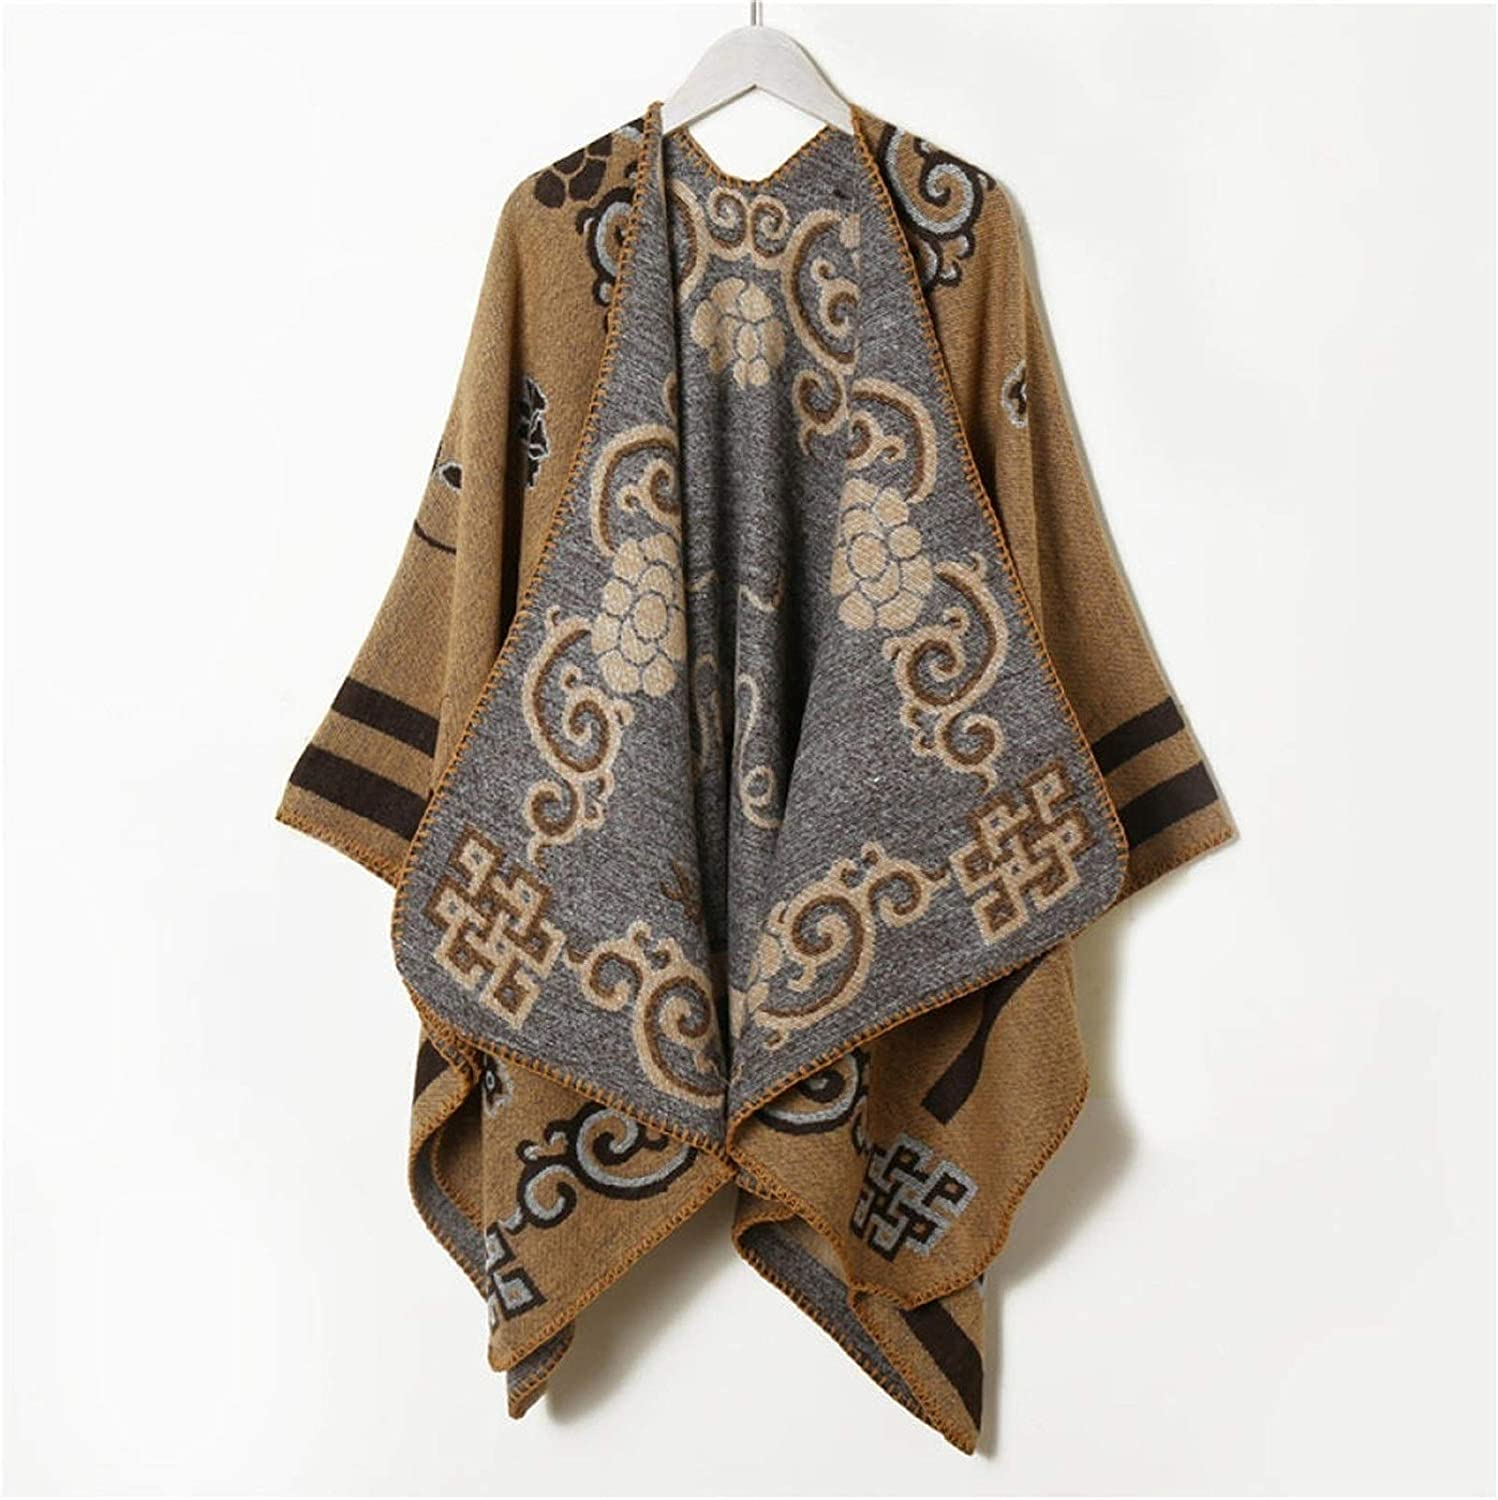 SYXMSM Scarf Women's Autumn and Winter New Wild Double-Sided Cashmere Thick Shawl Long Section Warm Bib (Color : 17, Size : 130150cm)